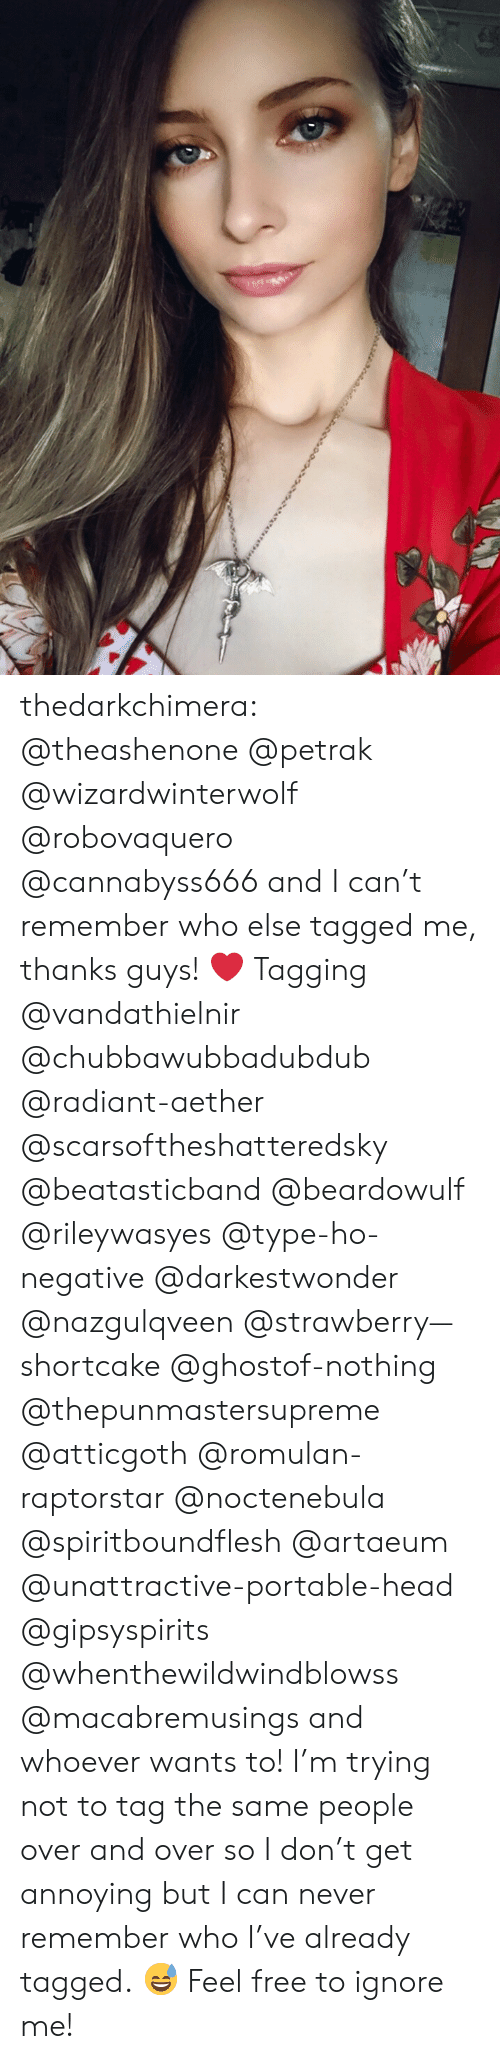 ignore me: thedarkchimera: @theashenone @petrak @wizardwinterwolf @robovaquero @cannabyss666 and I can't remember who else tagged me, thanks guys! ❤️  Tagging @vandathielnir @chubbawubbadubdub @radiant-aether @scarsoftheshatteredsky @beatasticband @beardowulf @rileywasyes @type-ho-negative @darkestwonder @nazgulqveen @strawberry—shortcake @ghostof-nothing @thepunmastersupreme @atticgoth @romulan-raptorstar @noctenebula @spiritboundflesh @artaeum @unattractive-portable-head @gipsyspirits @whenthewildwindblowss @macabremusings and whoever wants to! I'm trying not to tag the same people over and over so I don't get annoying but I can never remember who I've already tagged.😅 Feel free to ignore me!